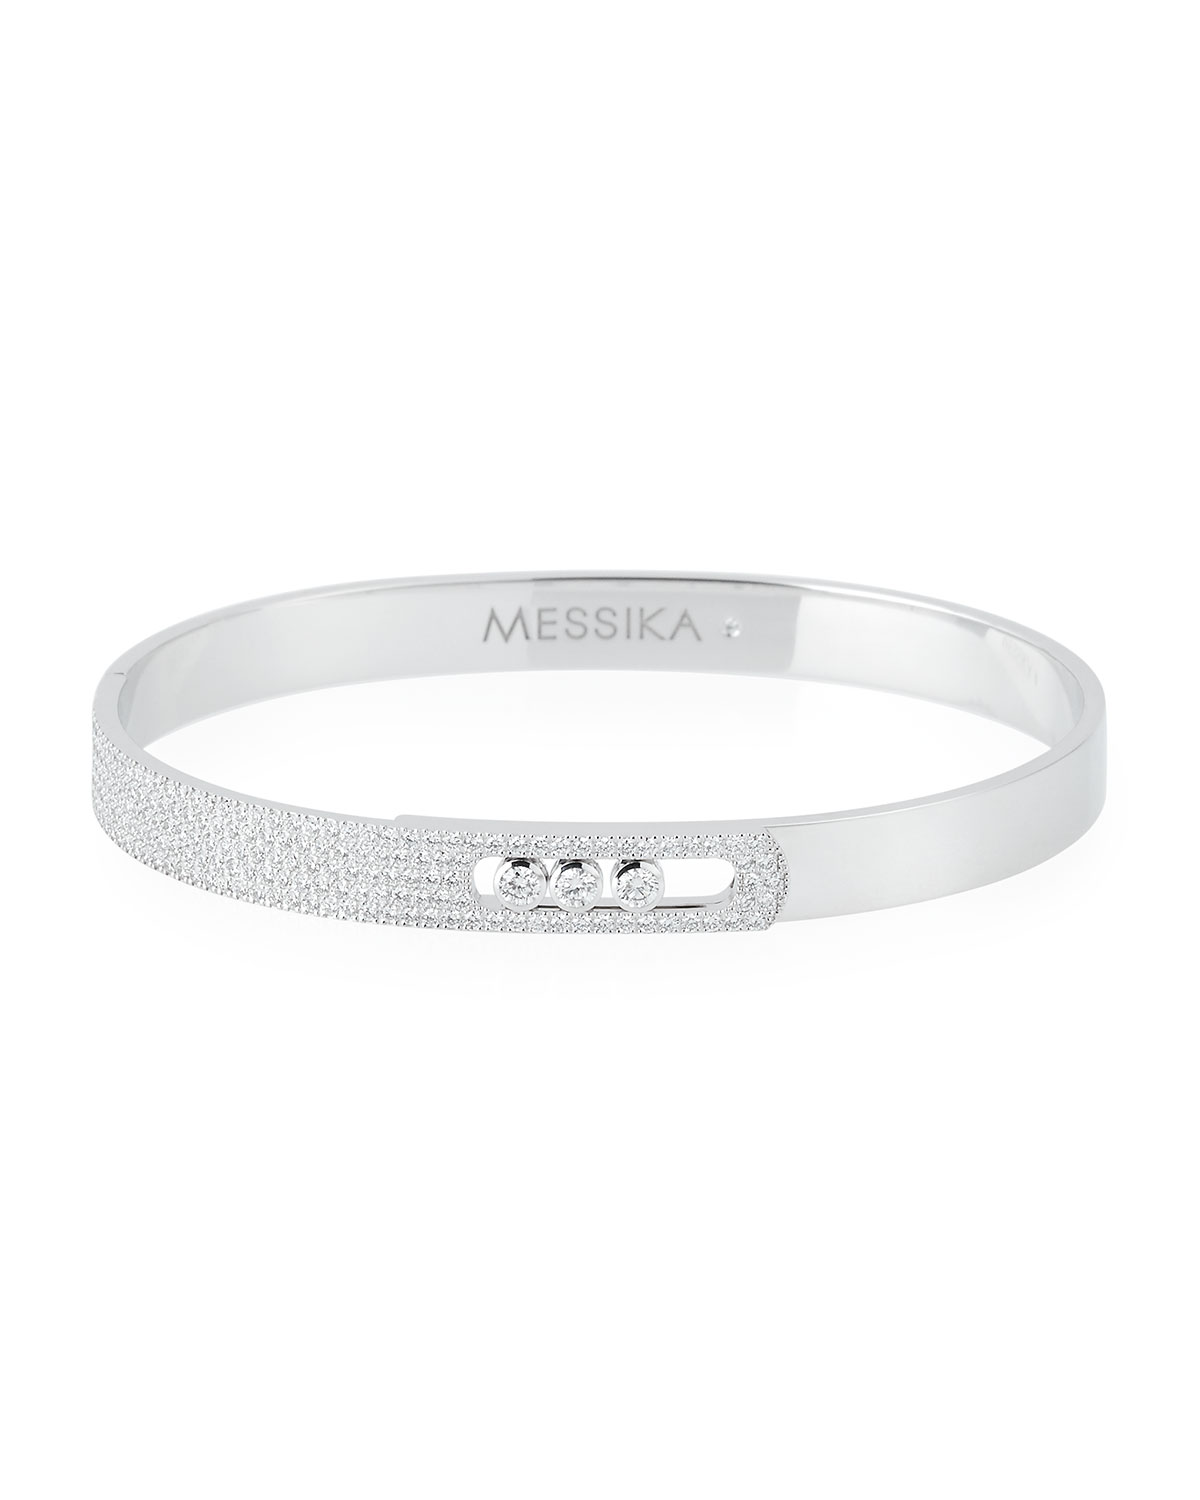 Messika 18k White Gold Small Pave Diamond Bangle P9vilJMSRz